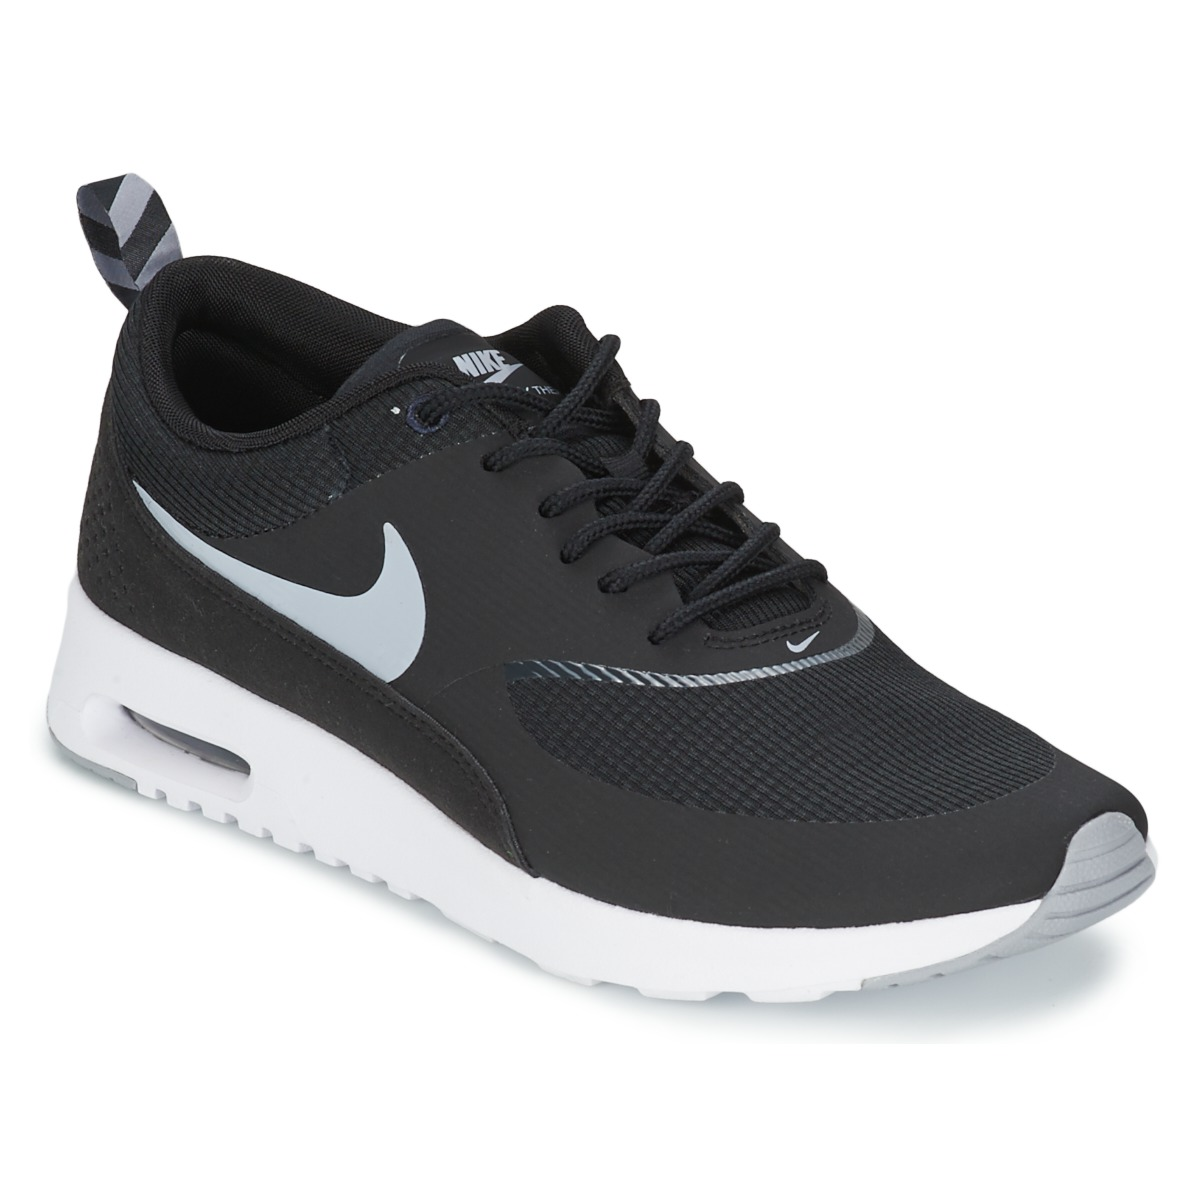 sale roshe run - Nike AIR MAX THEA Noir / Wolf Grey-Anthracite-Blanc - Livraison ...